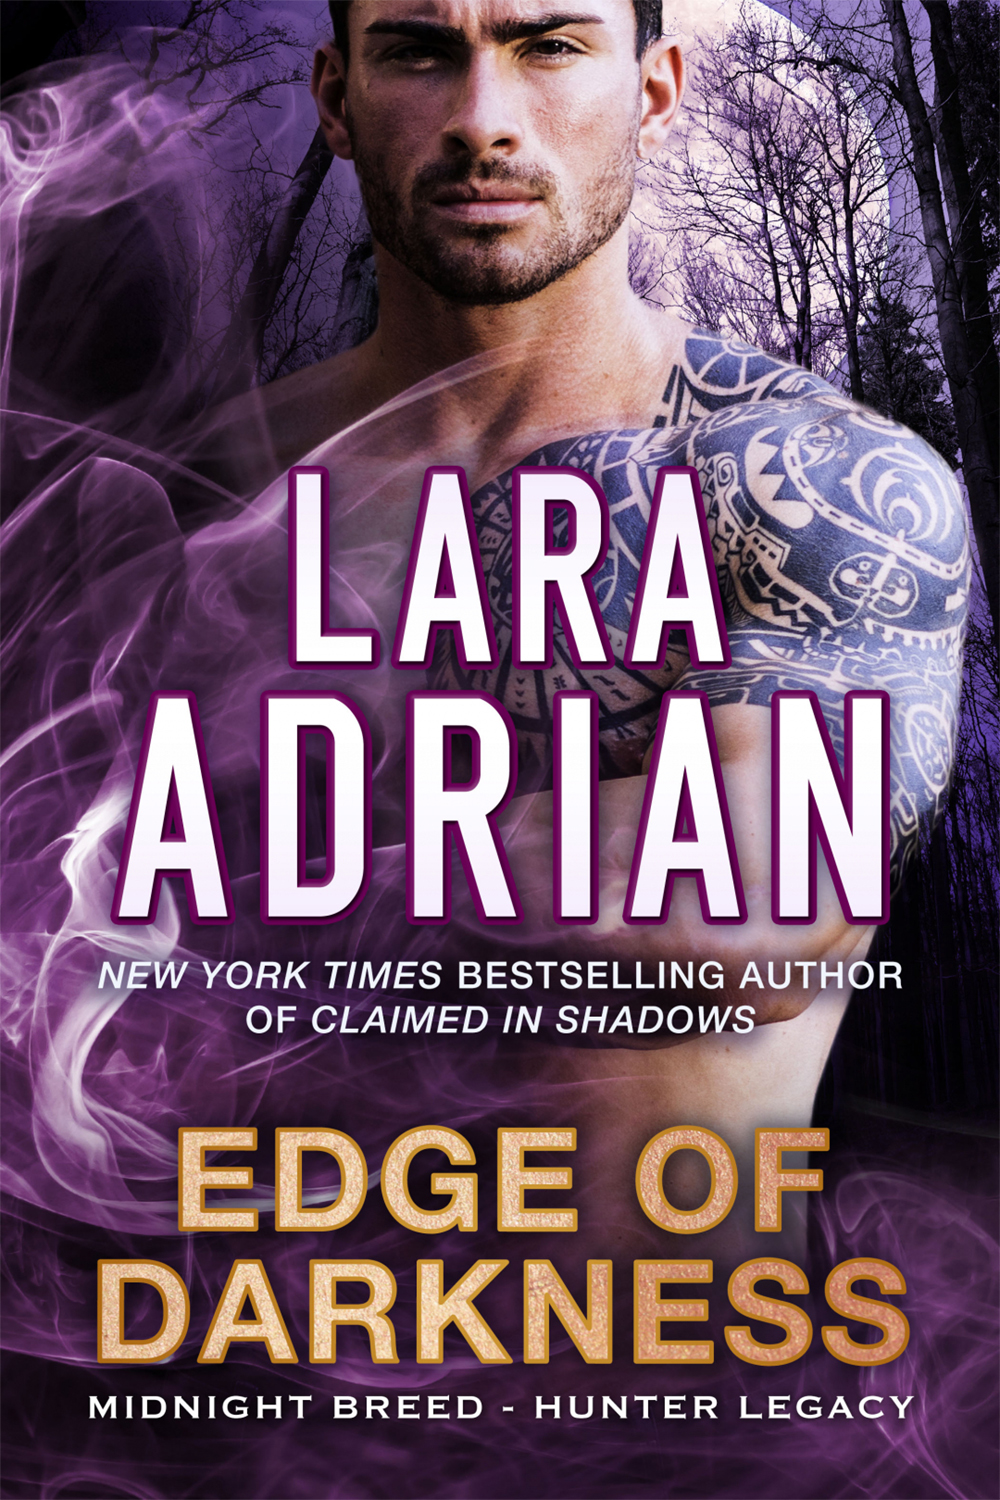 S1 E13 Edge of Darkness by Lara Adrian